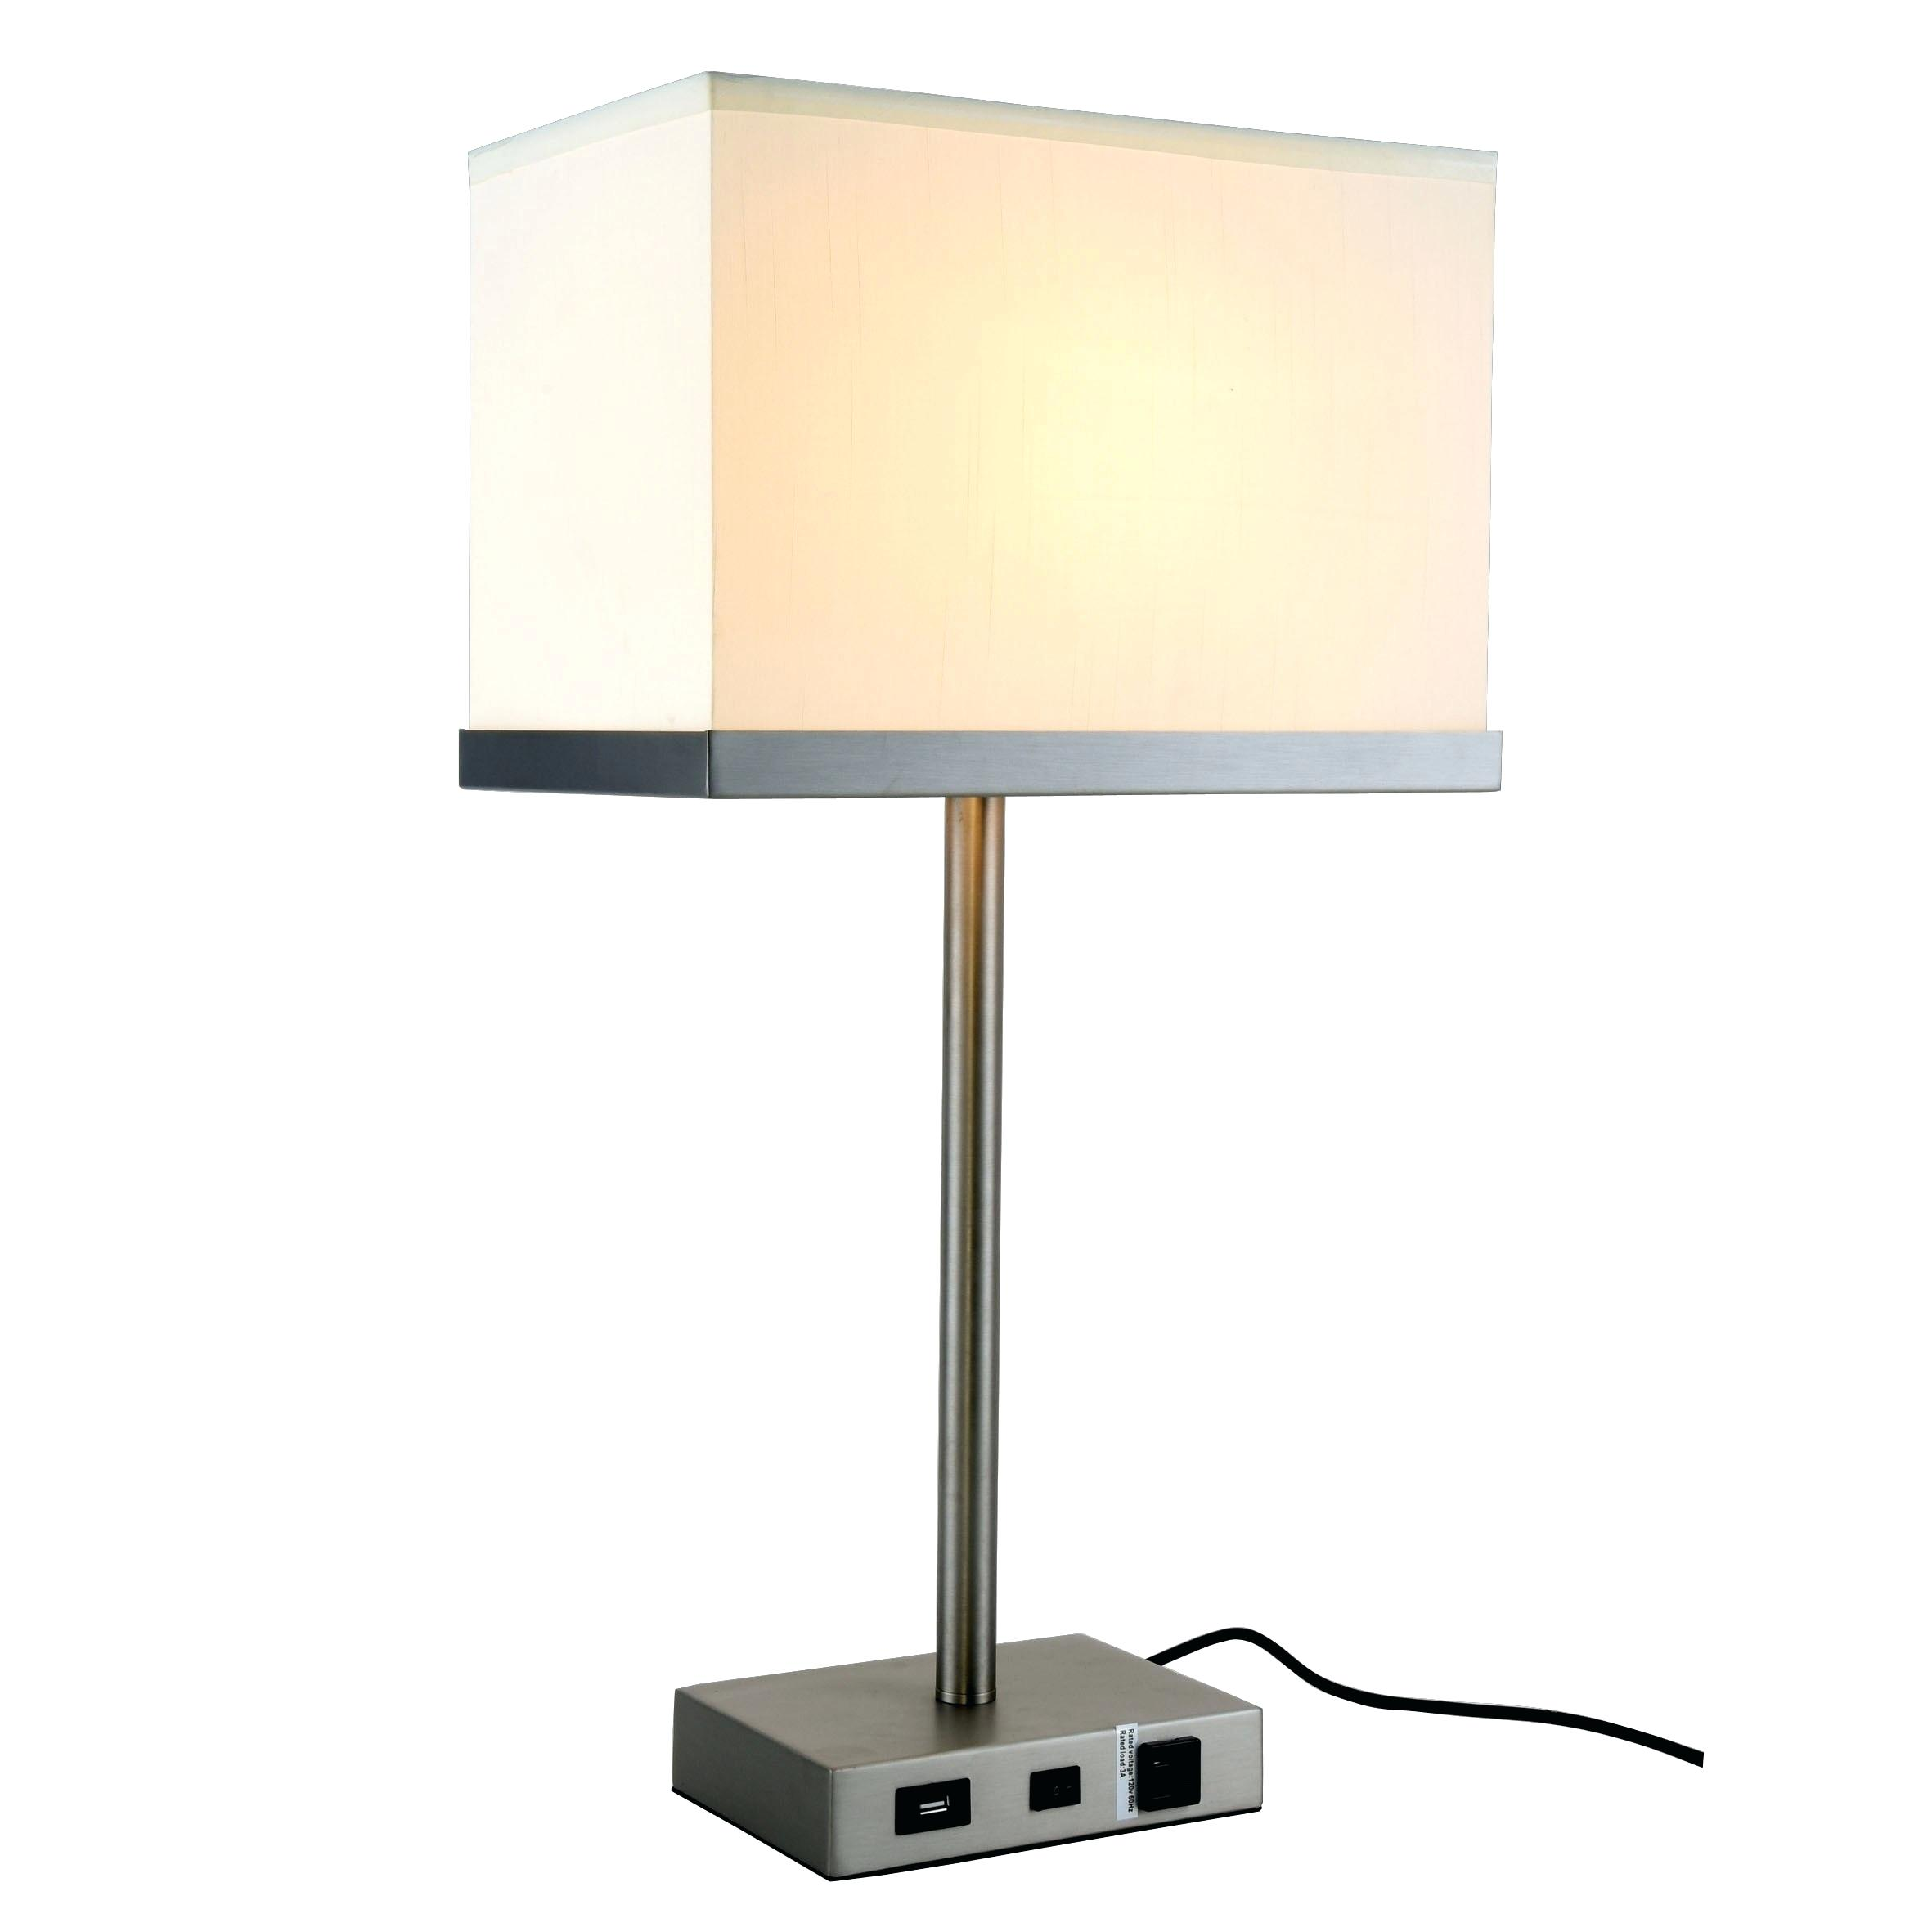 table lamp with usb port dekho collection light vintage nickel finish bronze heyburn brushed steel accent dark grey end tables door fold tiffany buffet long narrow sofa rope